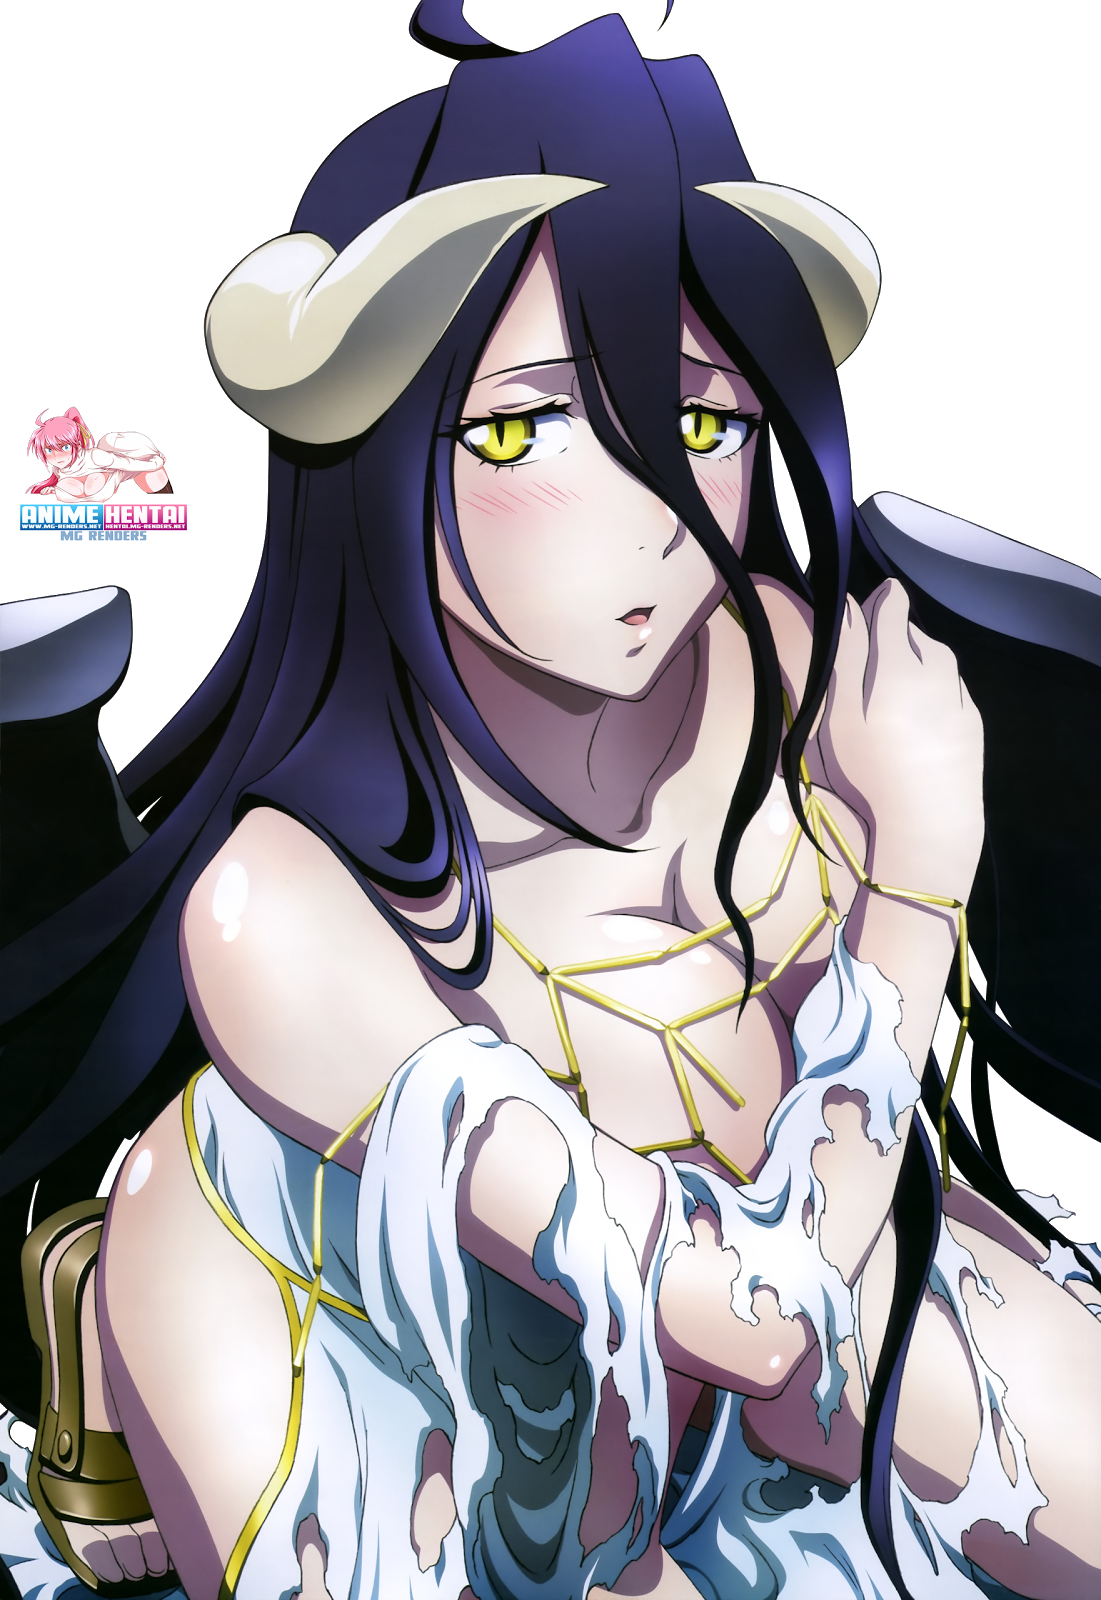 Tags: Anime, Render,  Albedo,  Overlord,  PNG, Image, Picture